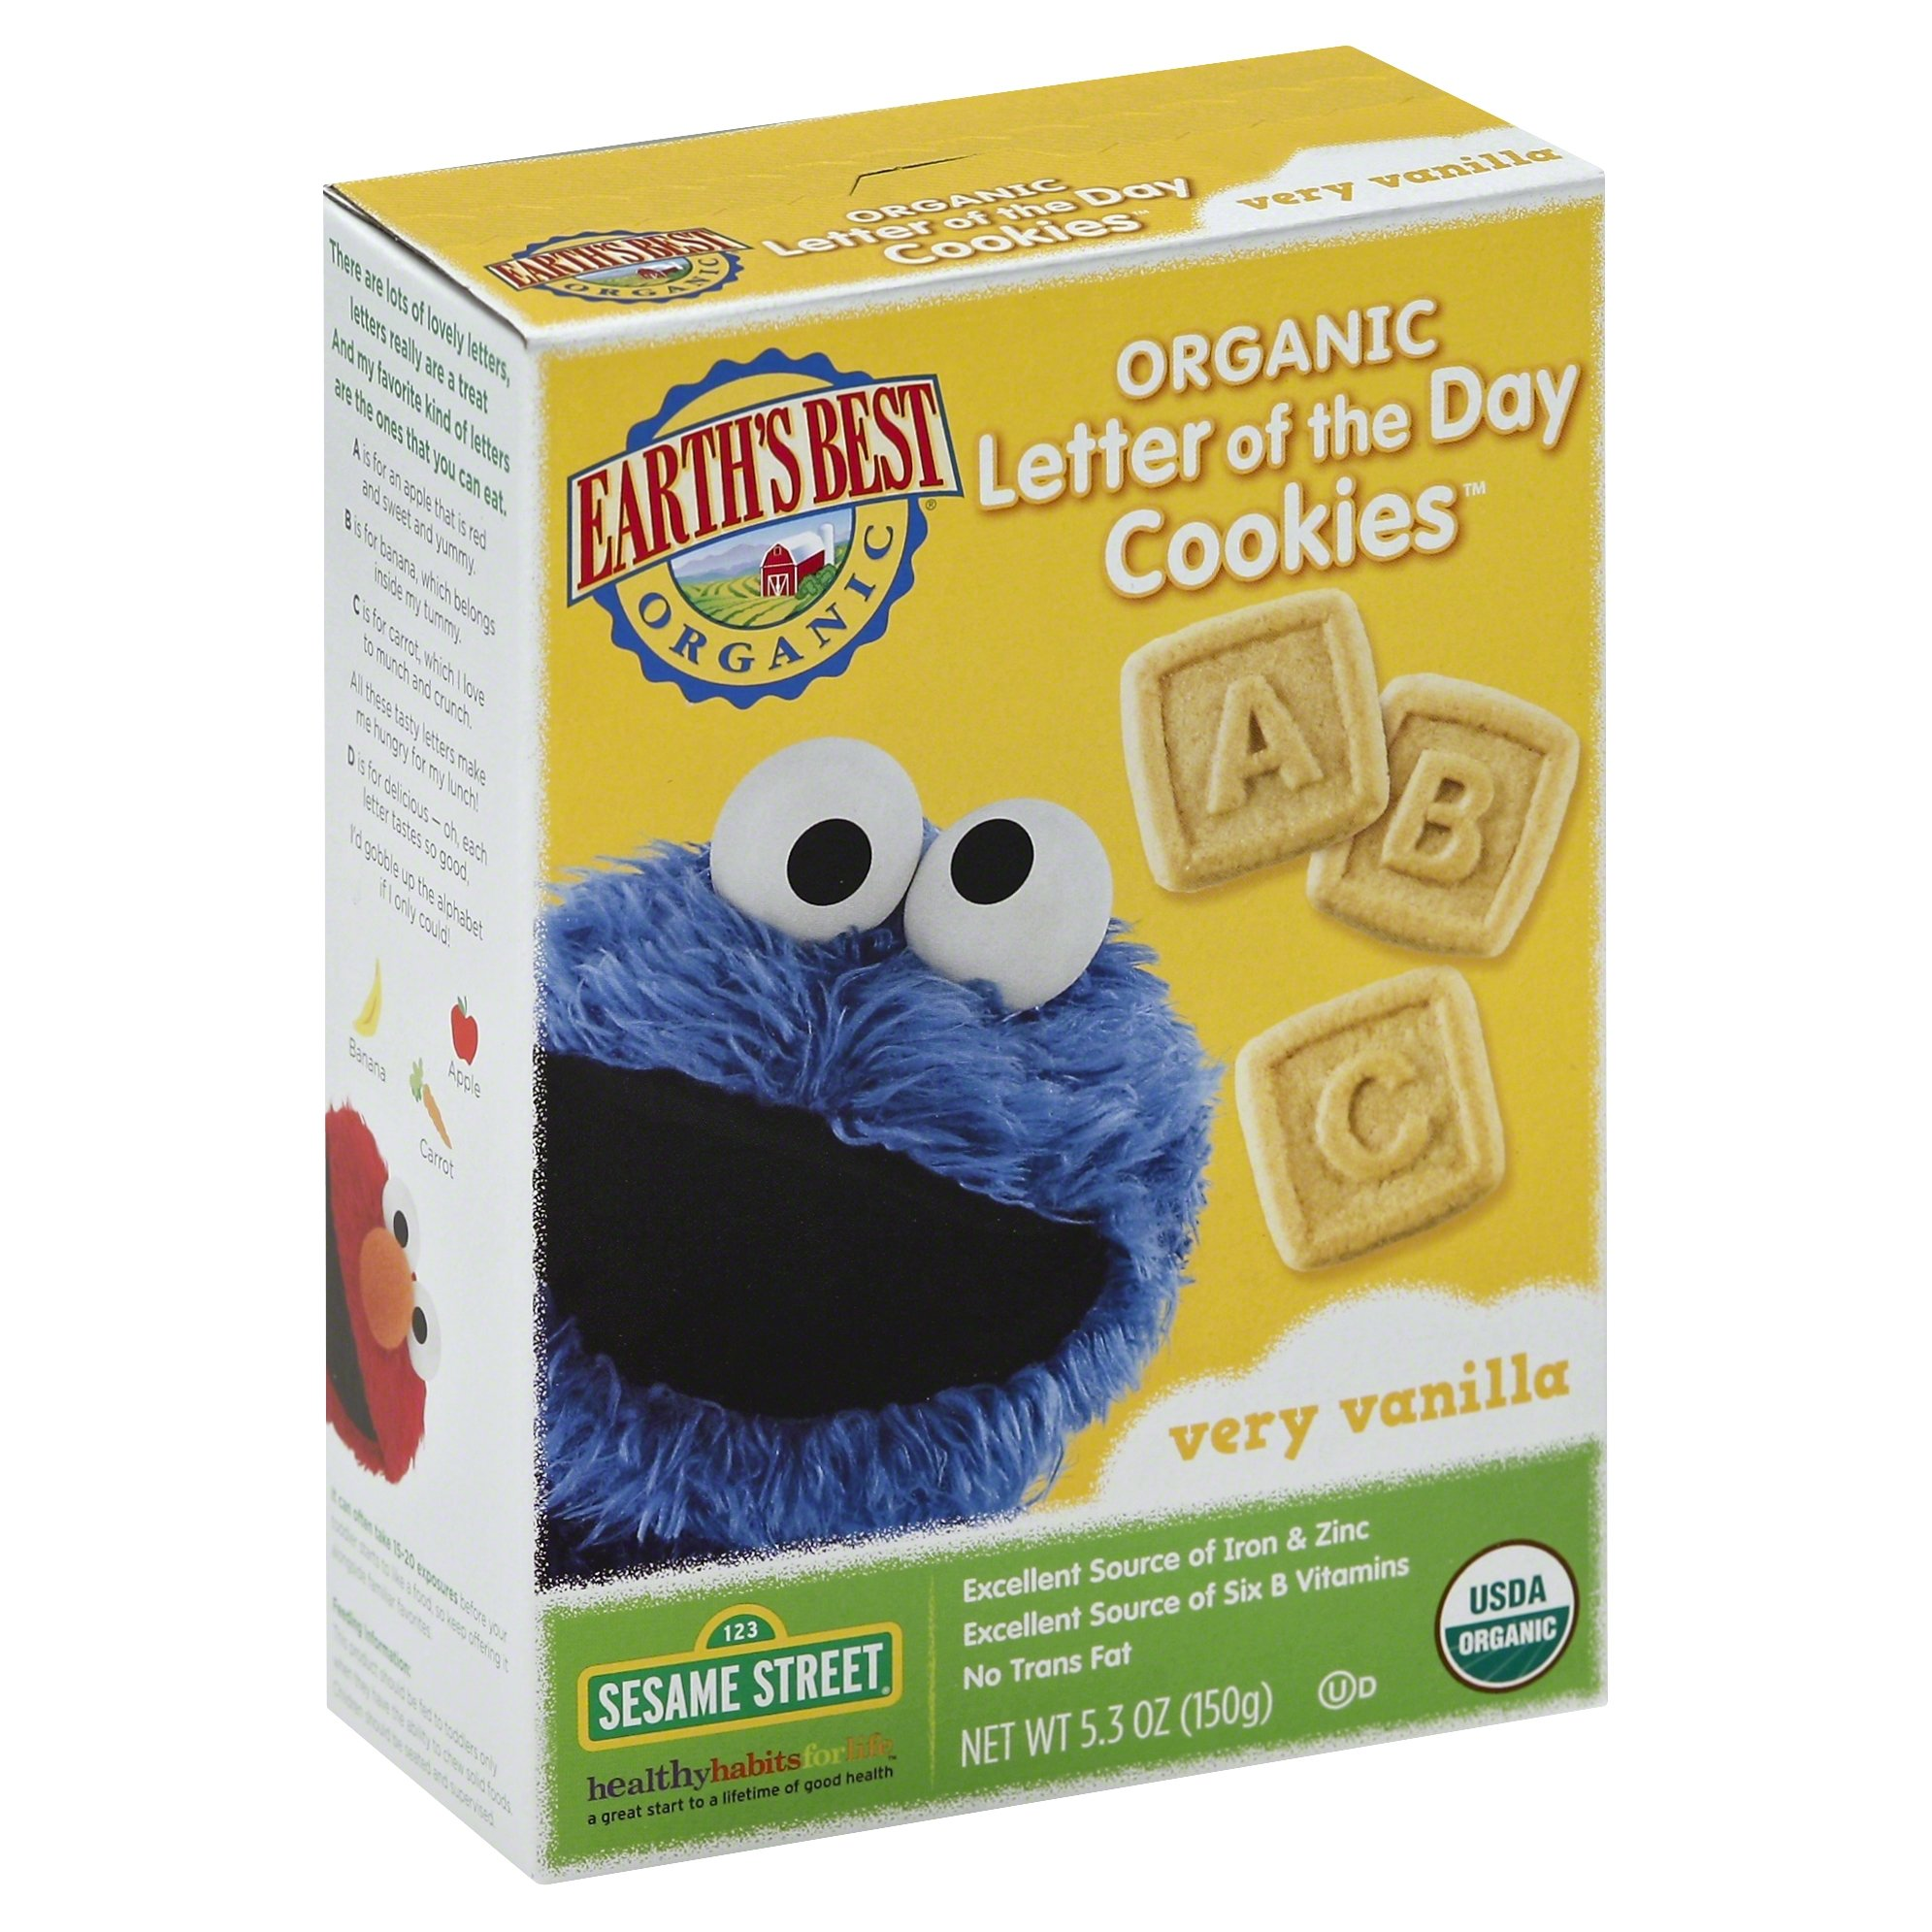 Earth s Best Organic Letter of the Day Cookies Oatmeal Cinnamon